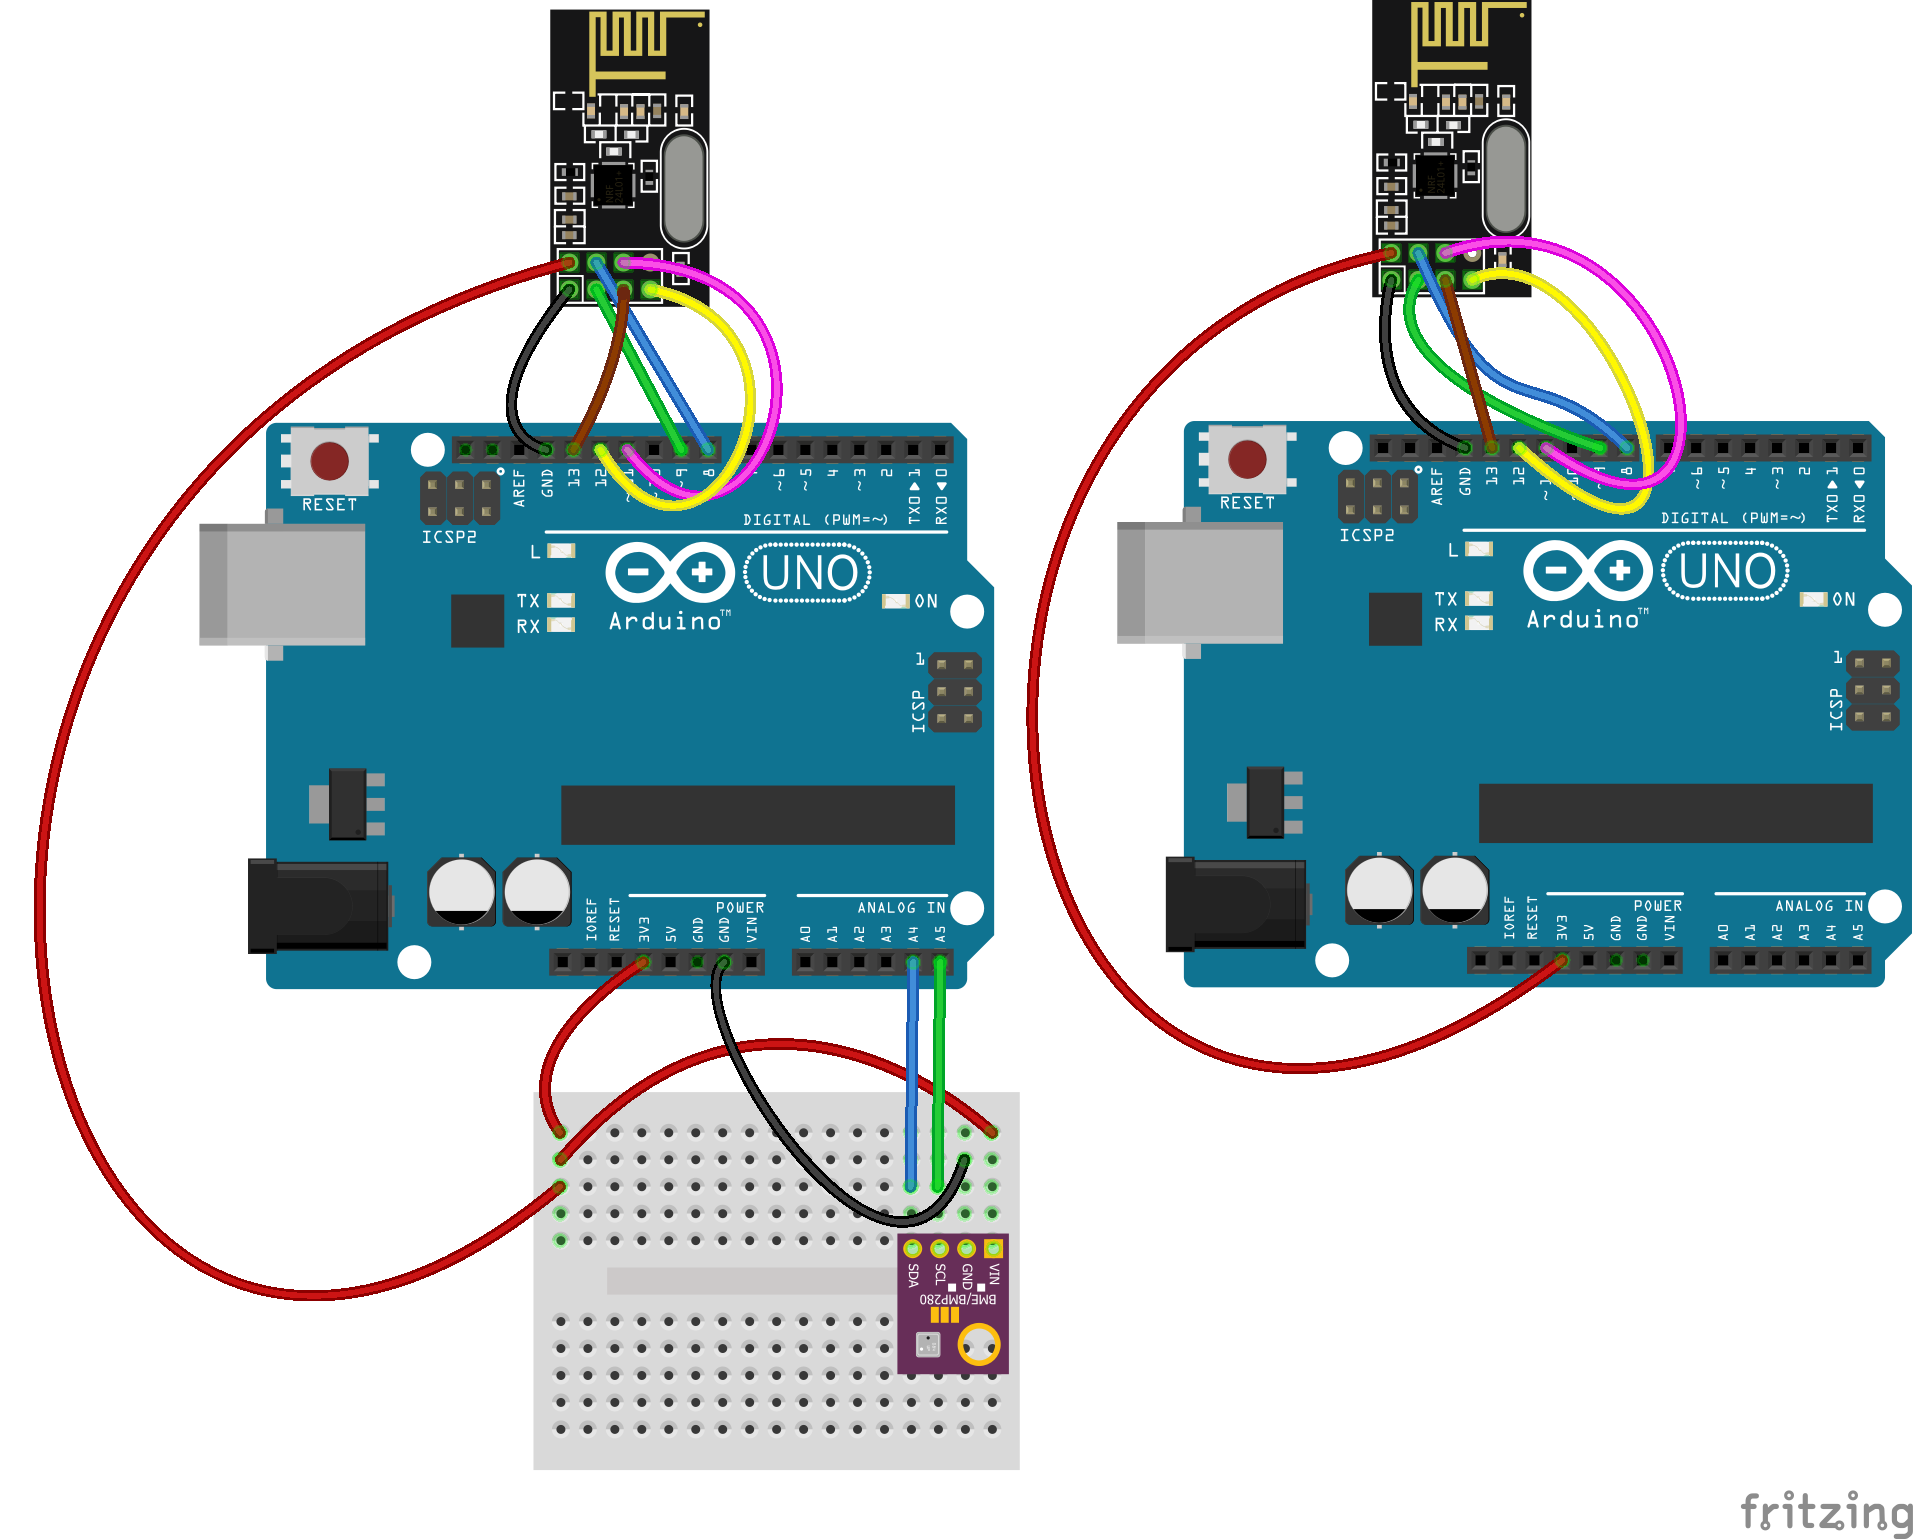 2.4 GHz Wireless Communication Between Two Arduinos